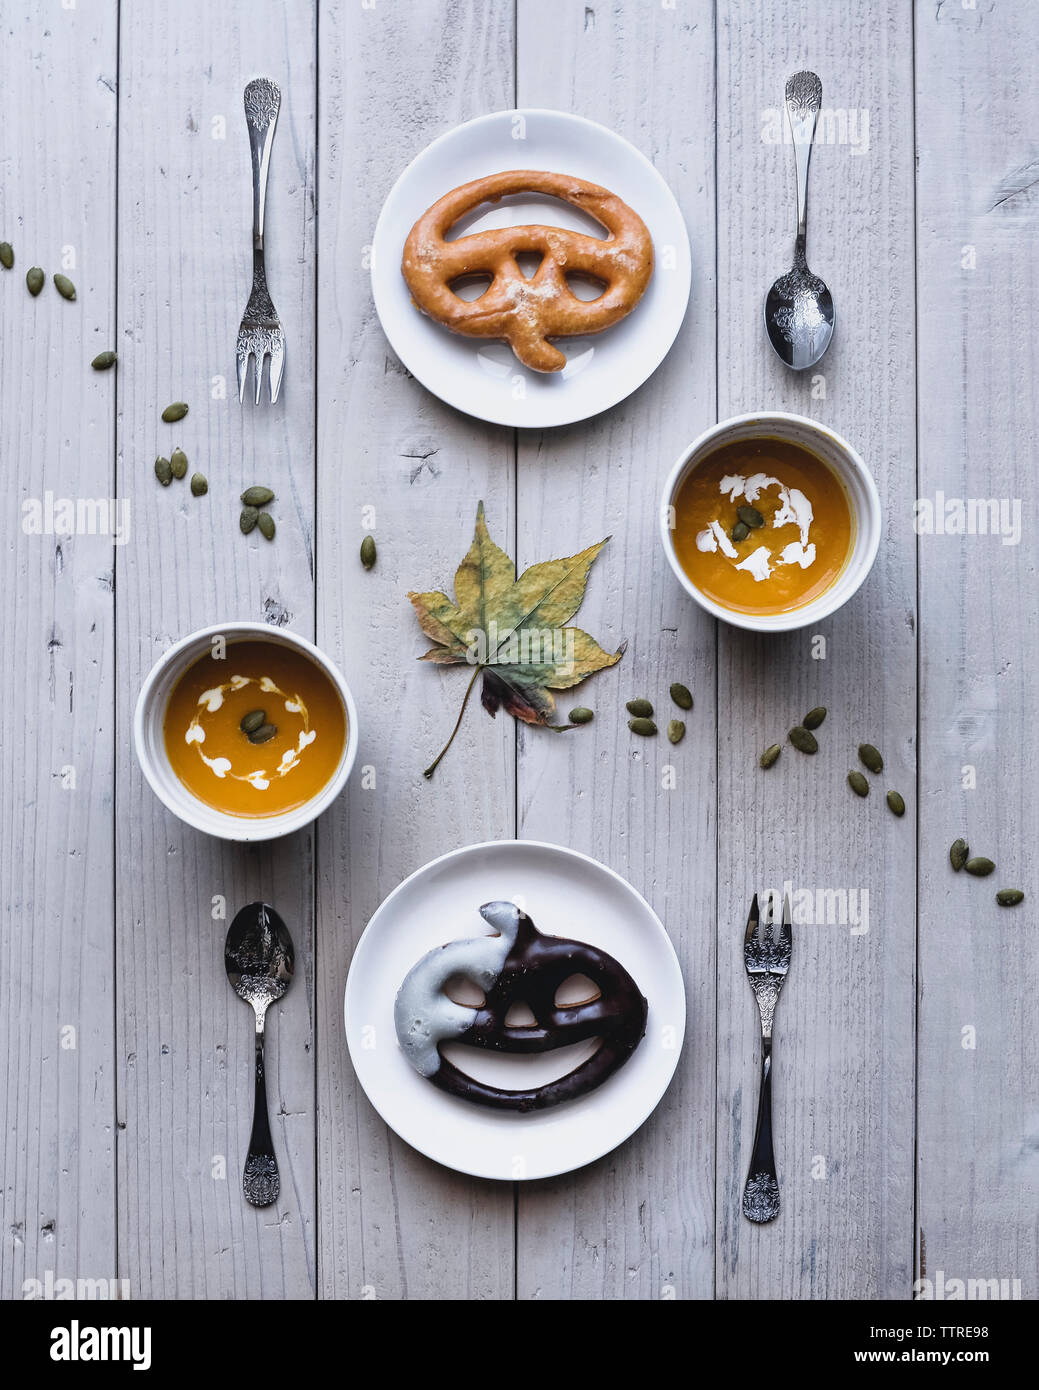 Overhead view of pretzels served with pumpkin soups on table - Stock Image